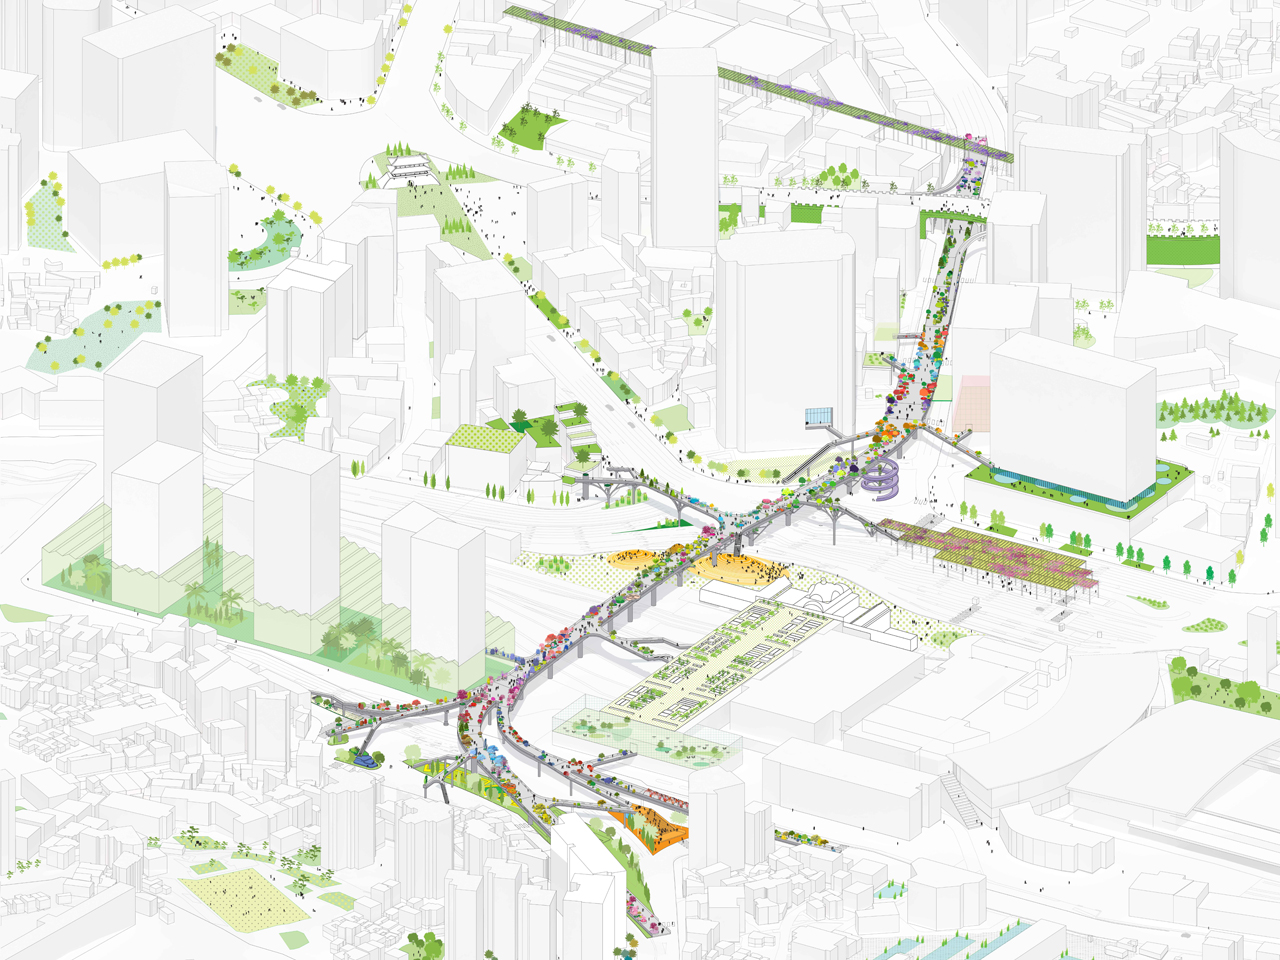 MVRDV wins competition to transform abandoned highway section into Seoul Skygarden